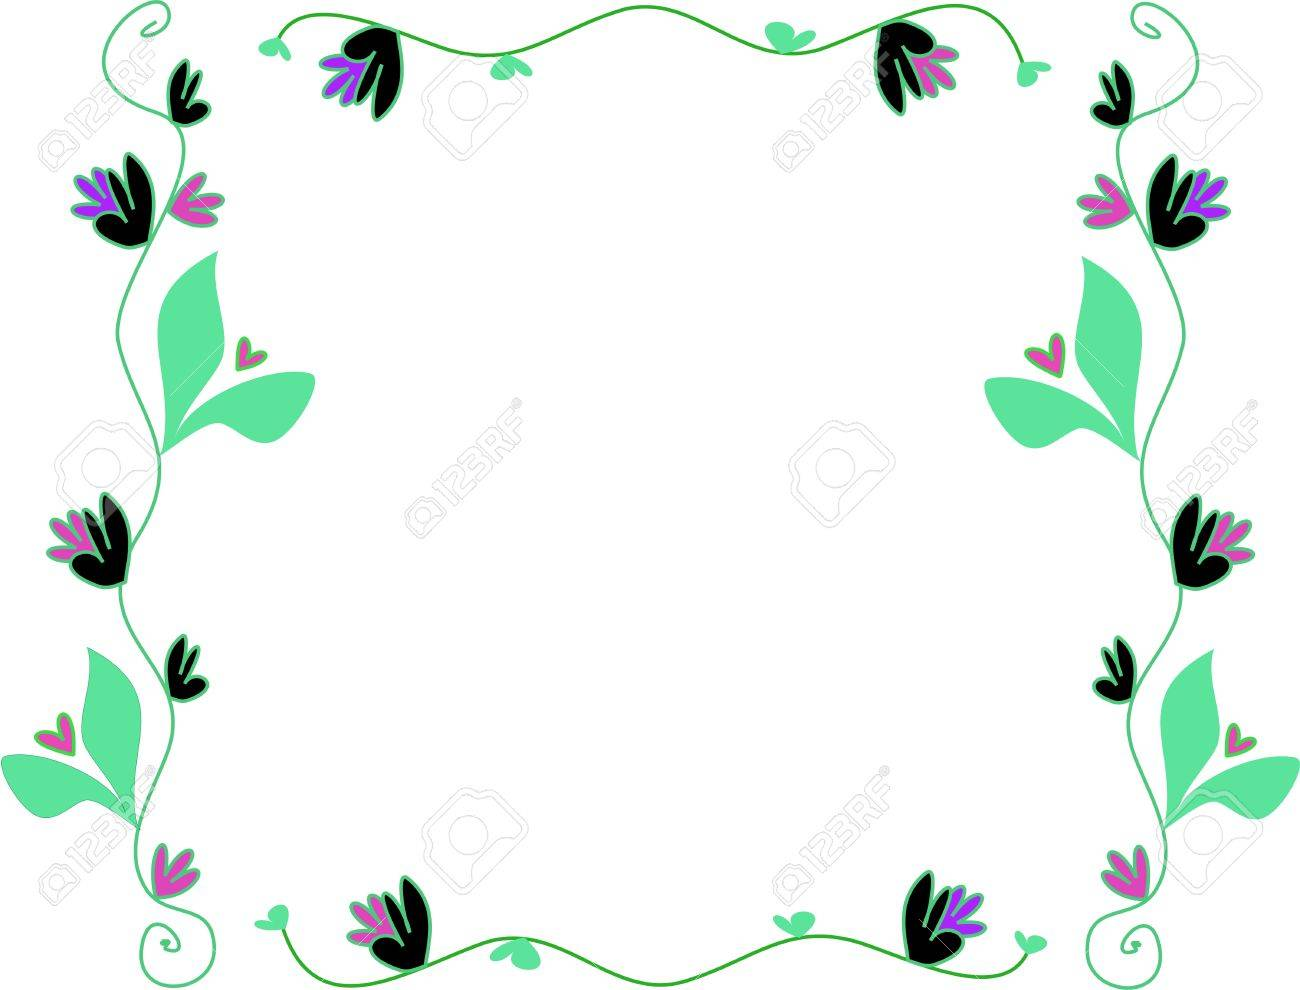 Frame of Delicate Vines and Flowers